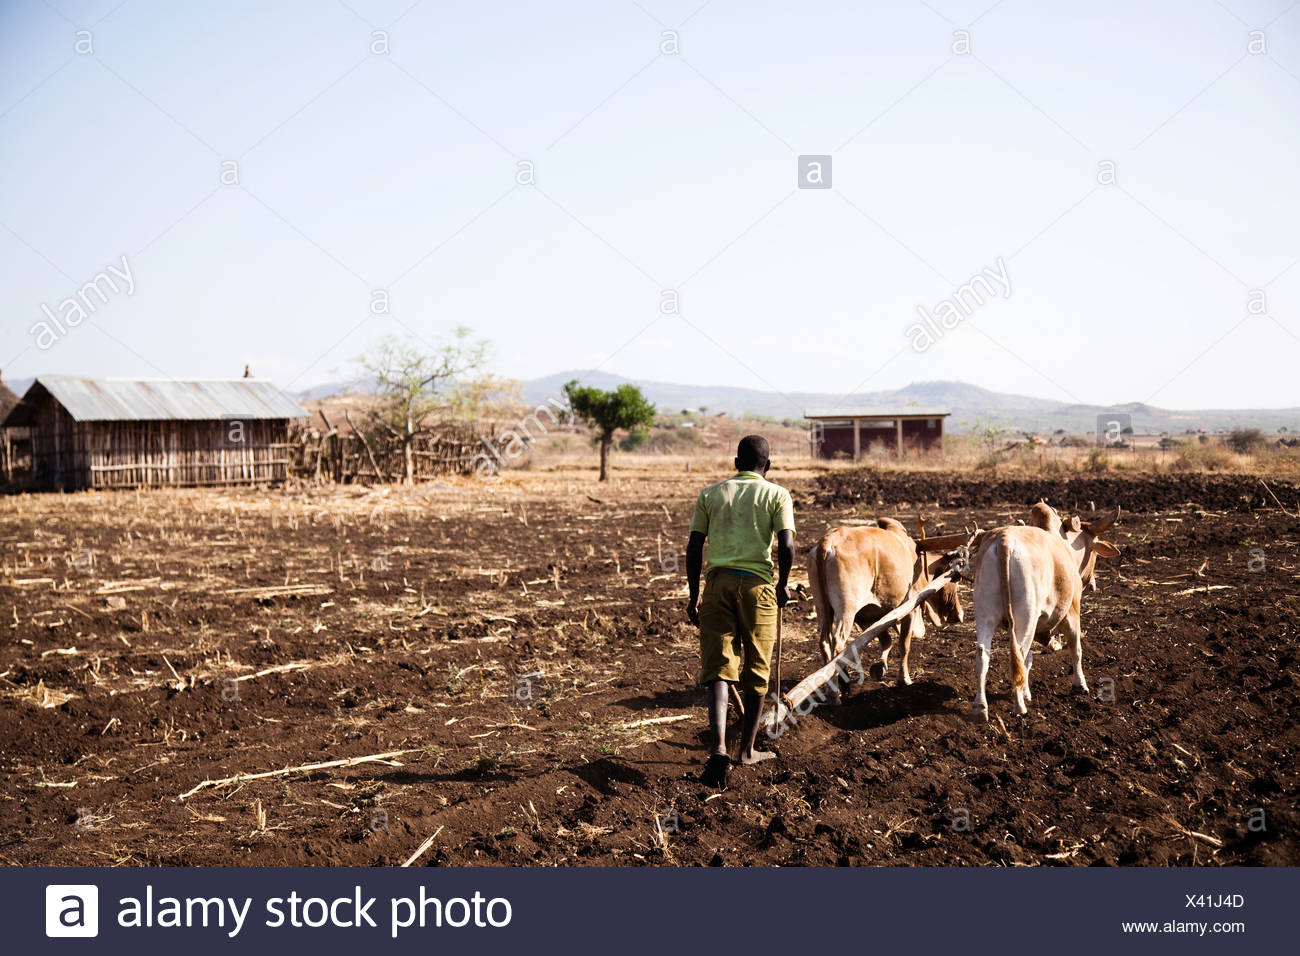 Local farmers work in the field in the remote Omo valley, Ethiopia. - Stock Image